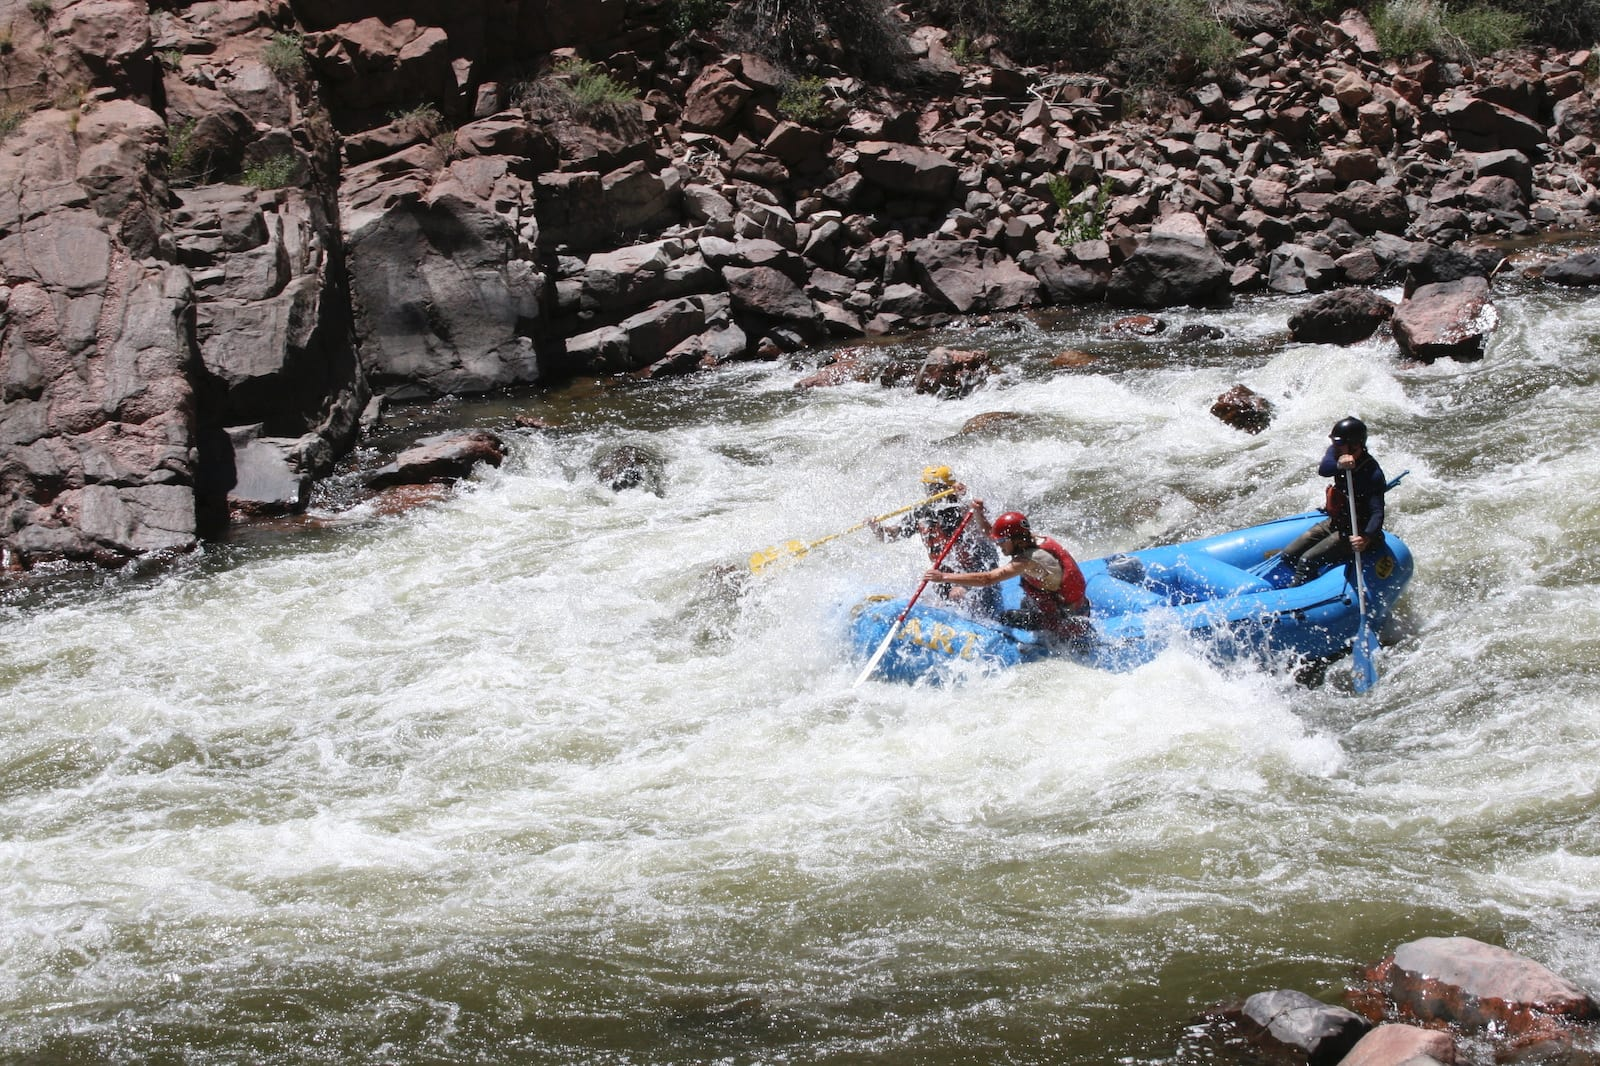 Rafters on Arkansas River, CO